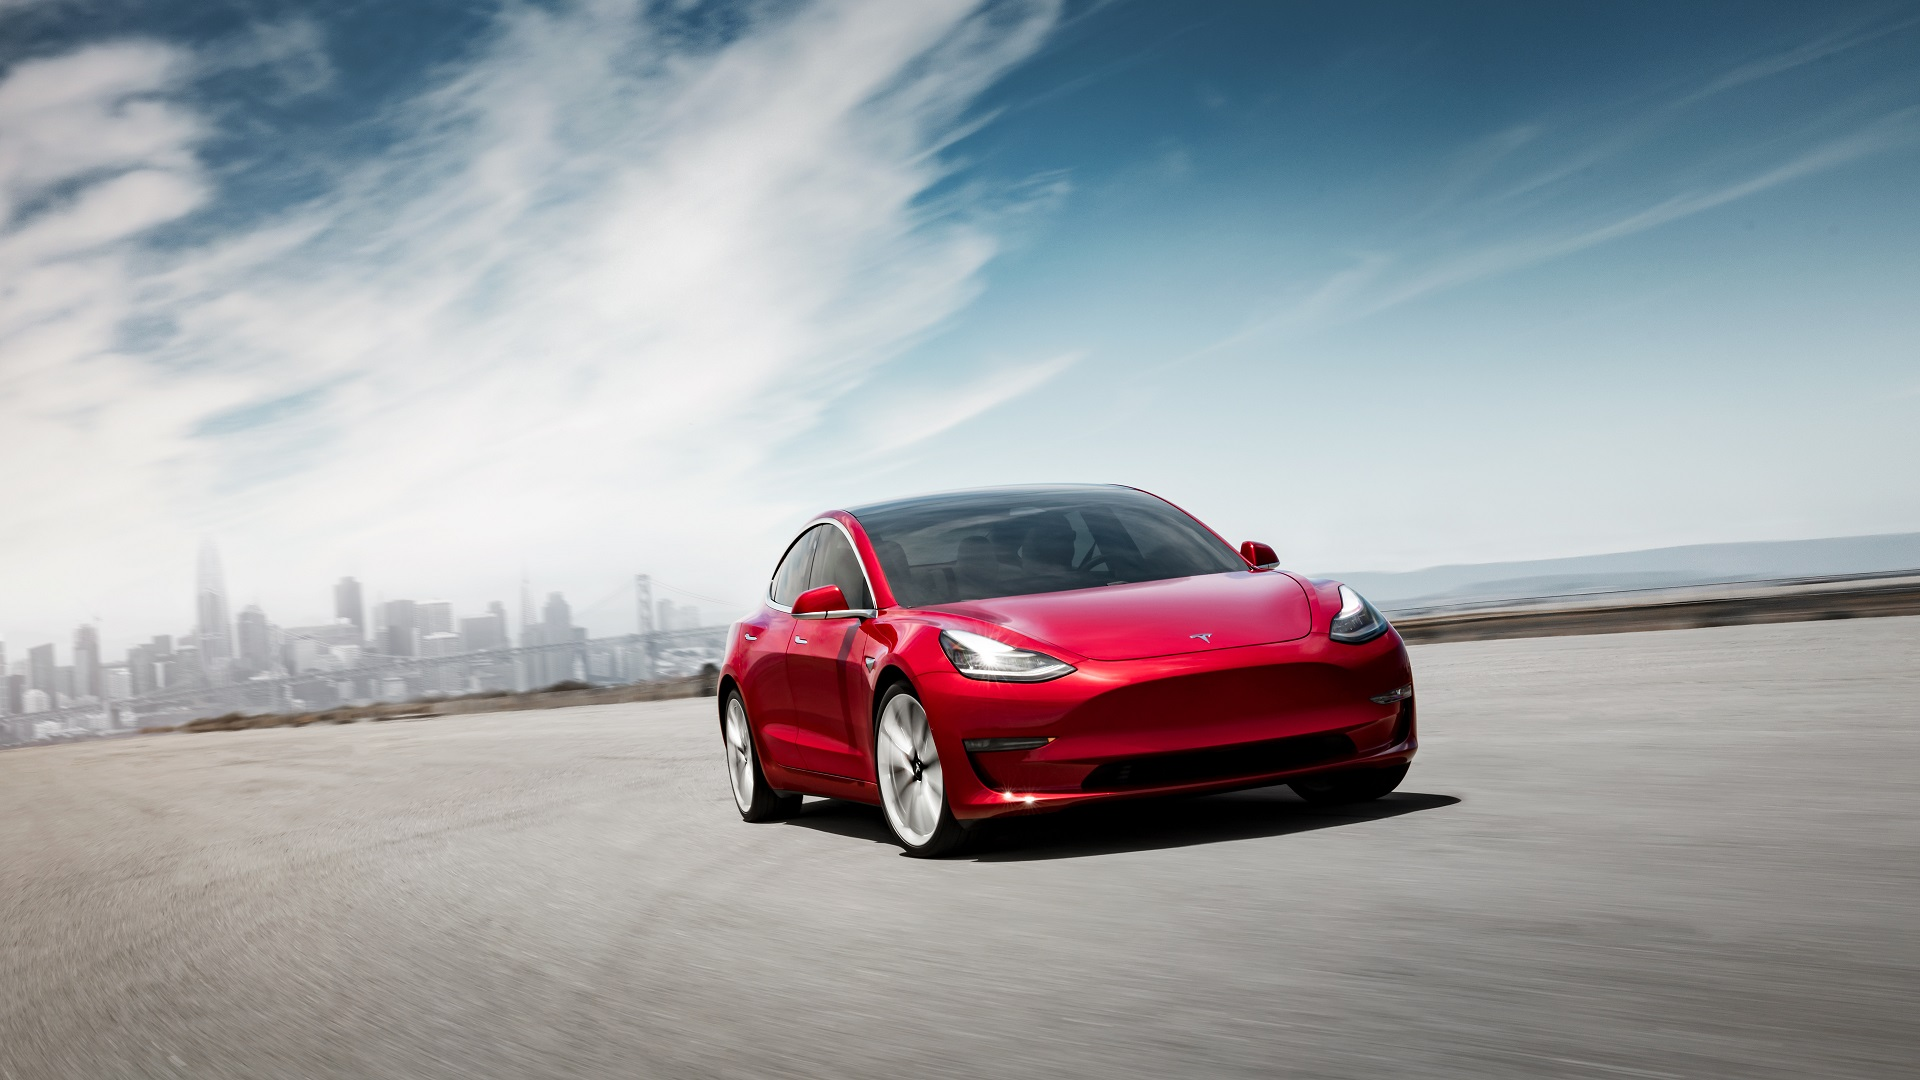 Of The New 5 000 Federal Canadian Ev Rebate Government Seemed To Deliberately Sideline And Exclude Tesla From Electric Vehicle